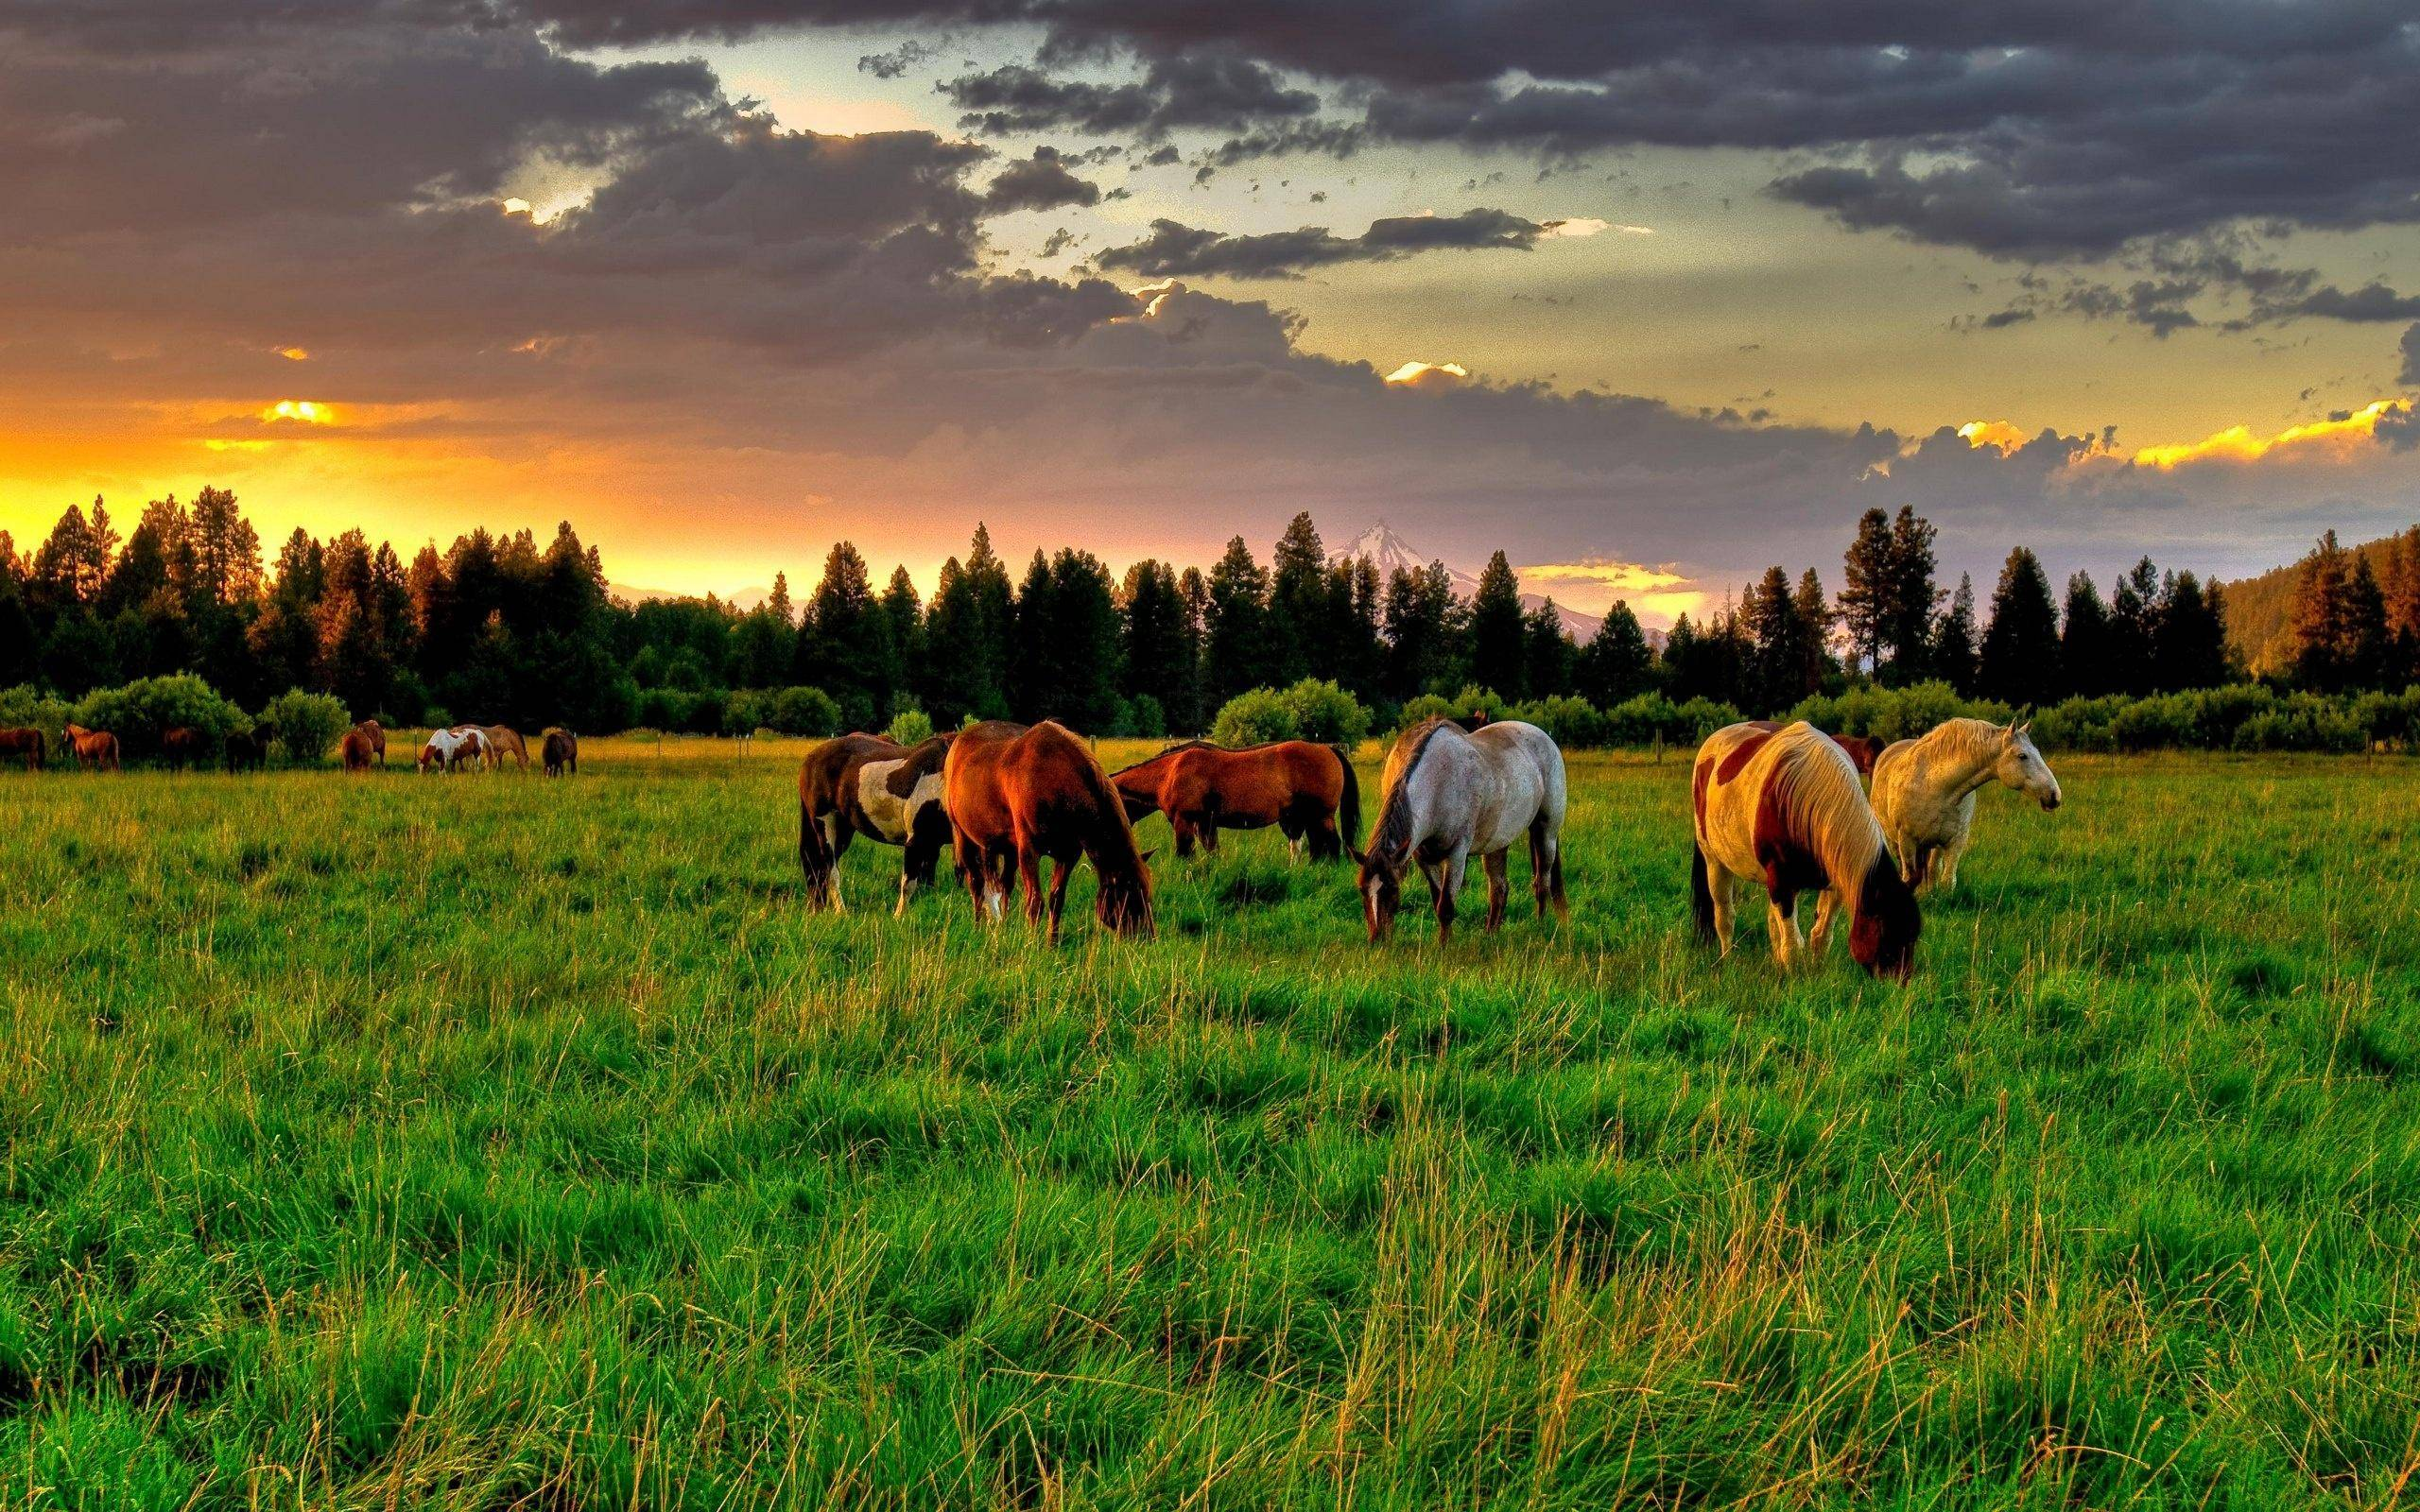 download free 2560x1600 horses grazing at sunrise desktop